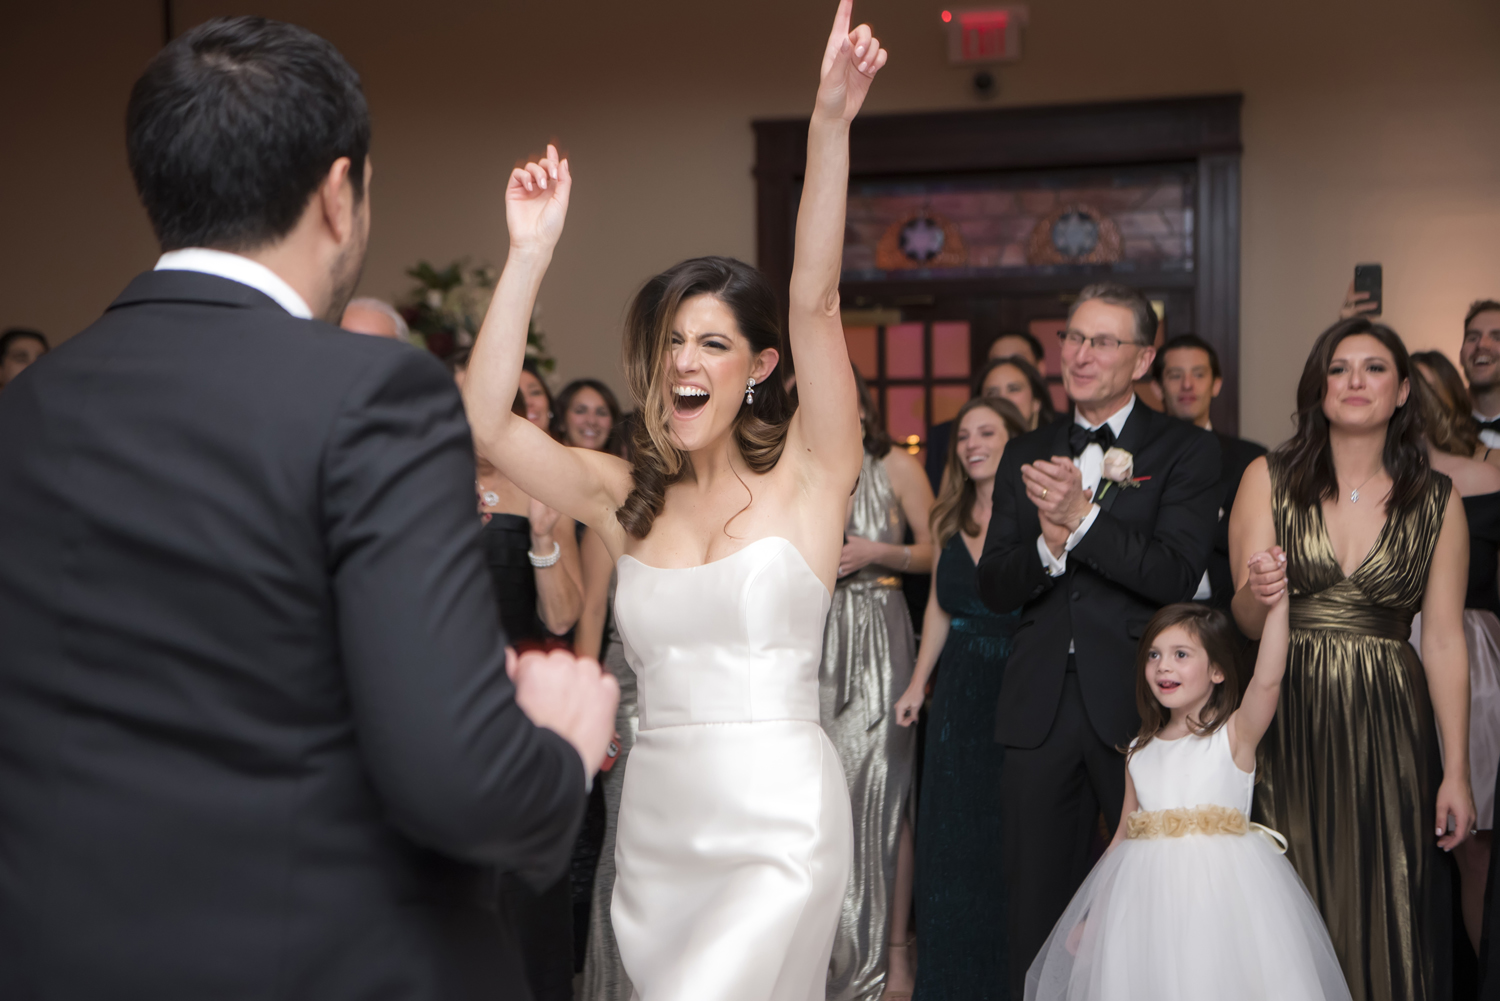 bride and groom dancing at wedding reception at Temple Emanu-El in Closter